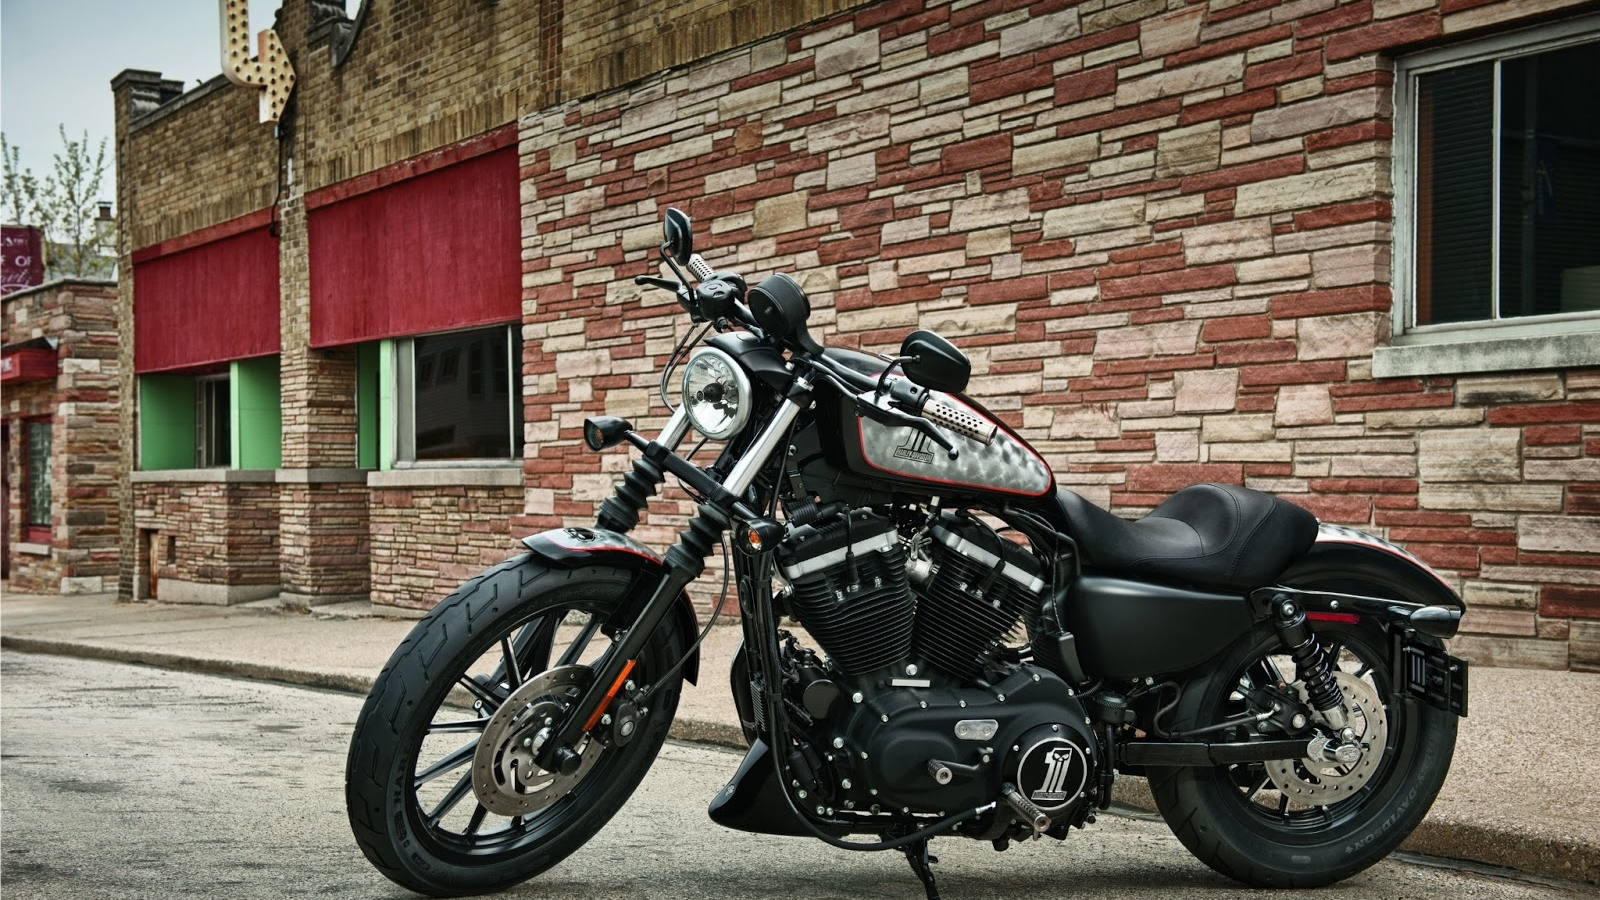 Harley Davidson Iron 883 Wallpapers